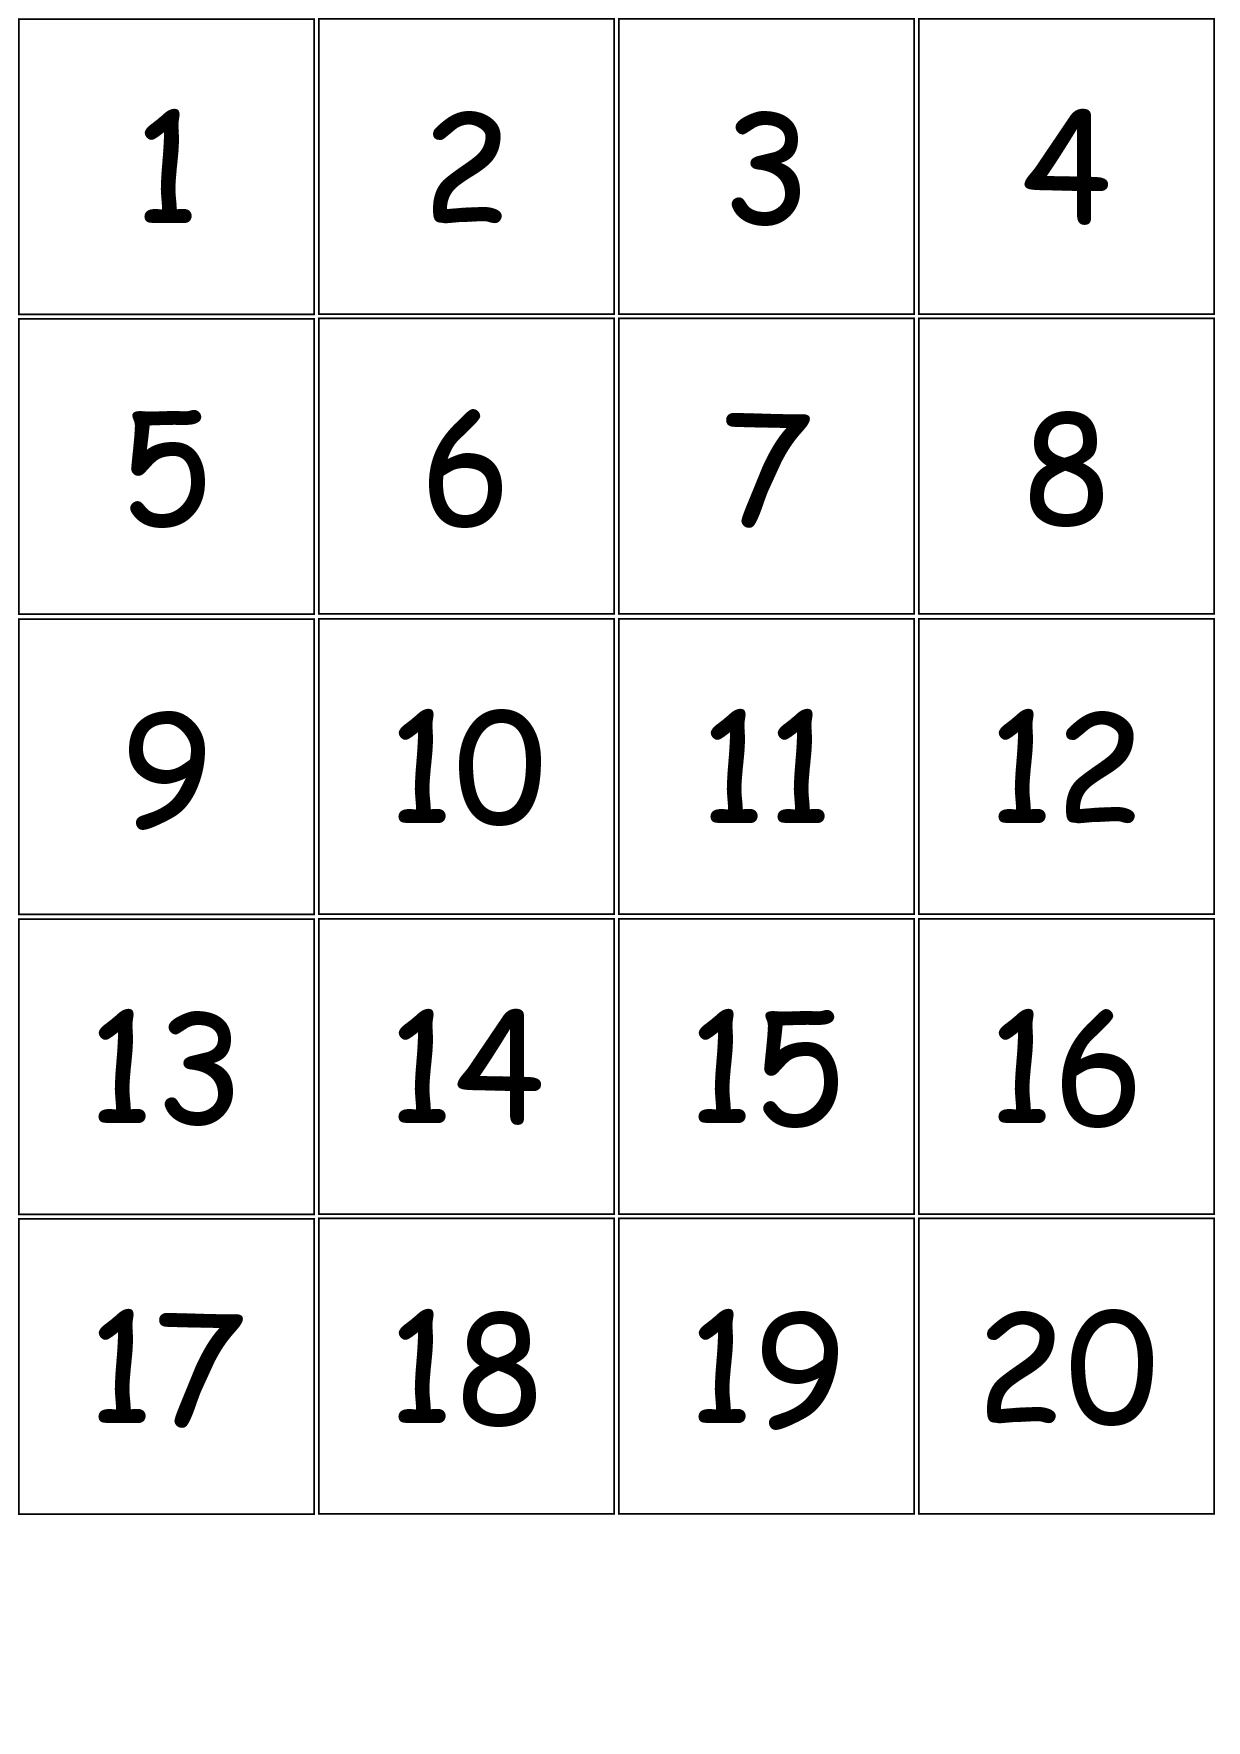 7 Images of Number Cards 1 100 Printable